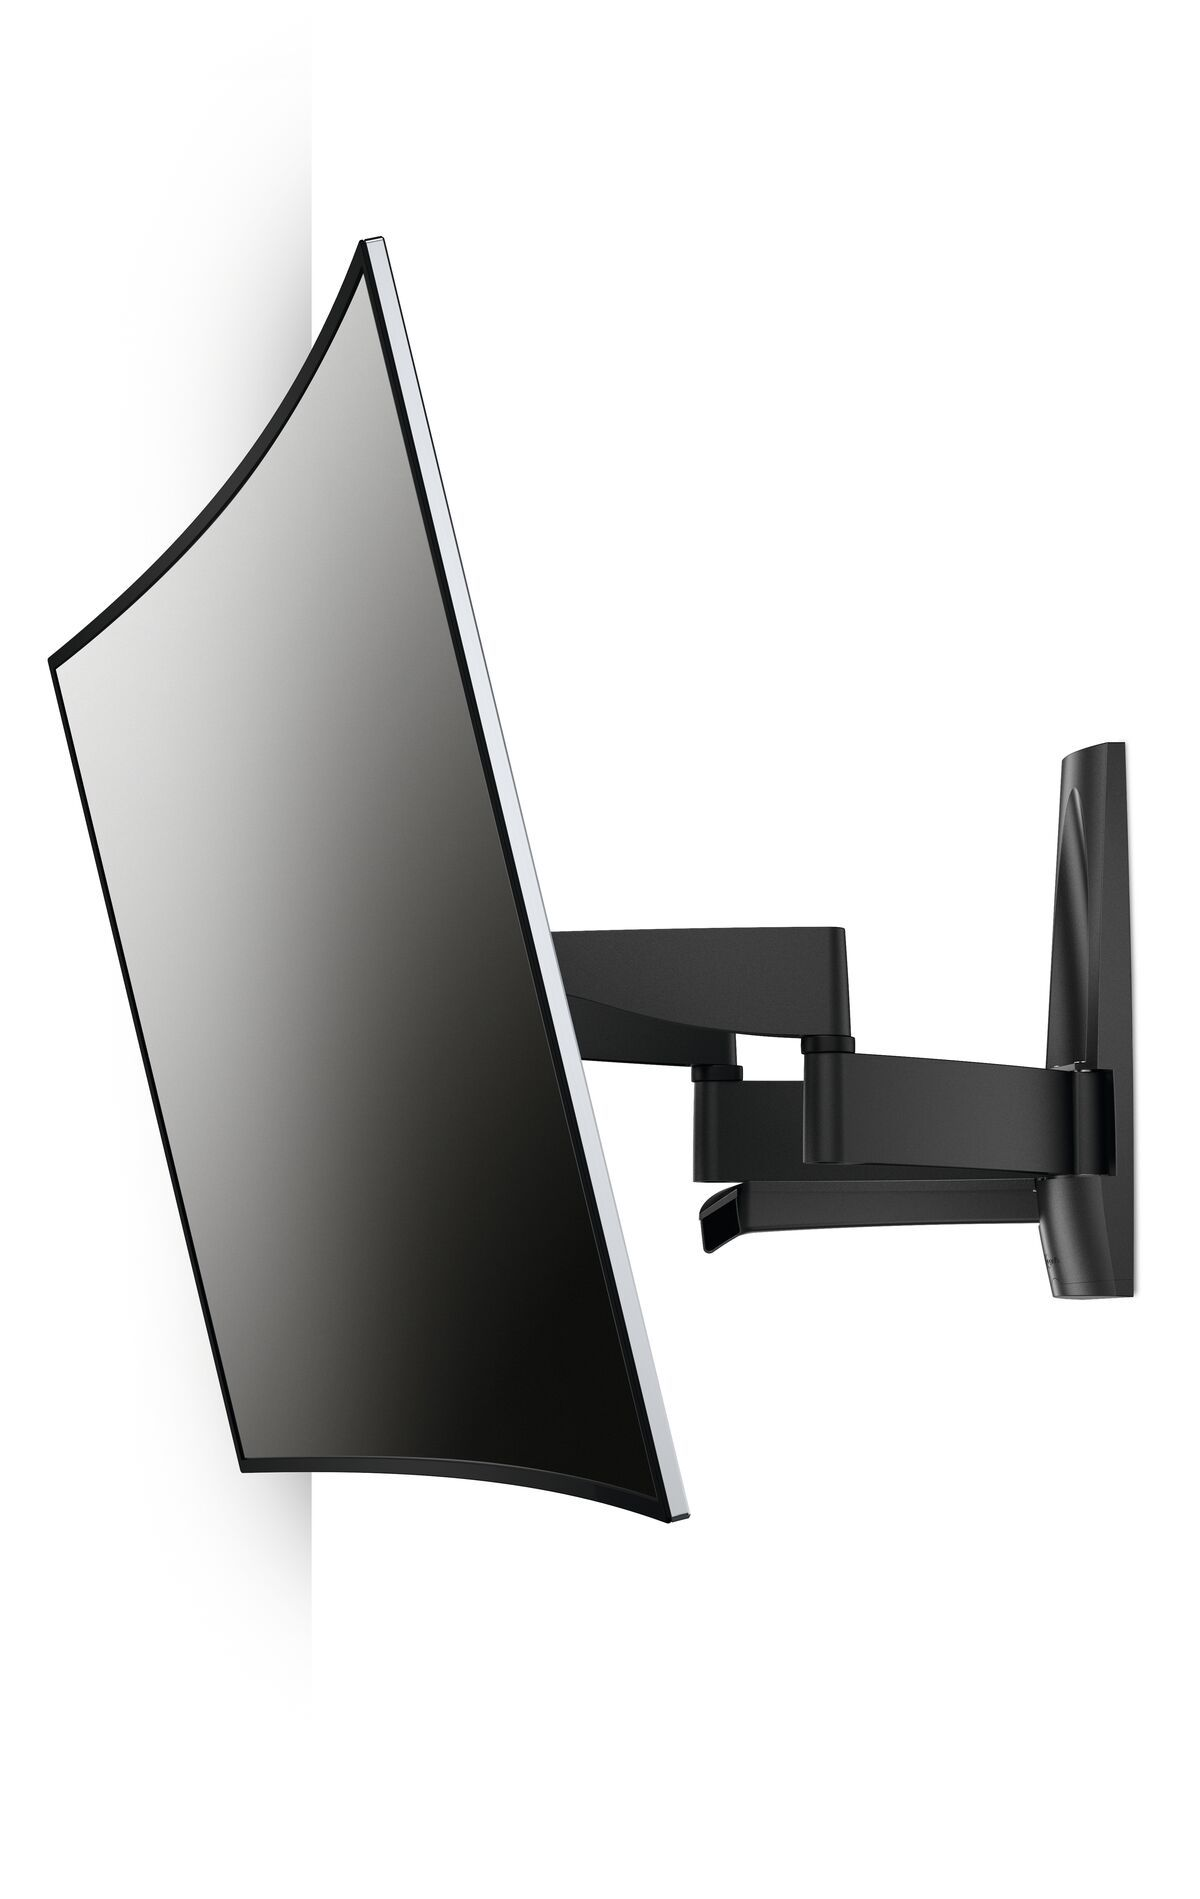 Vogel's WALL 2450 Full-Motion TV Wall Mount - Suitable for 55 up to 100 inch TVs - Motion (up to 120°) - Tilt up to 15° - White wall